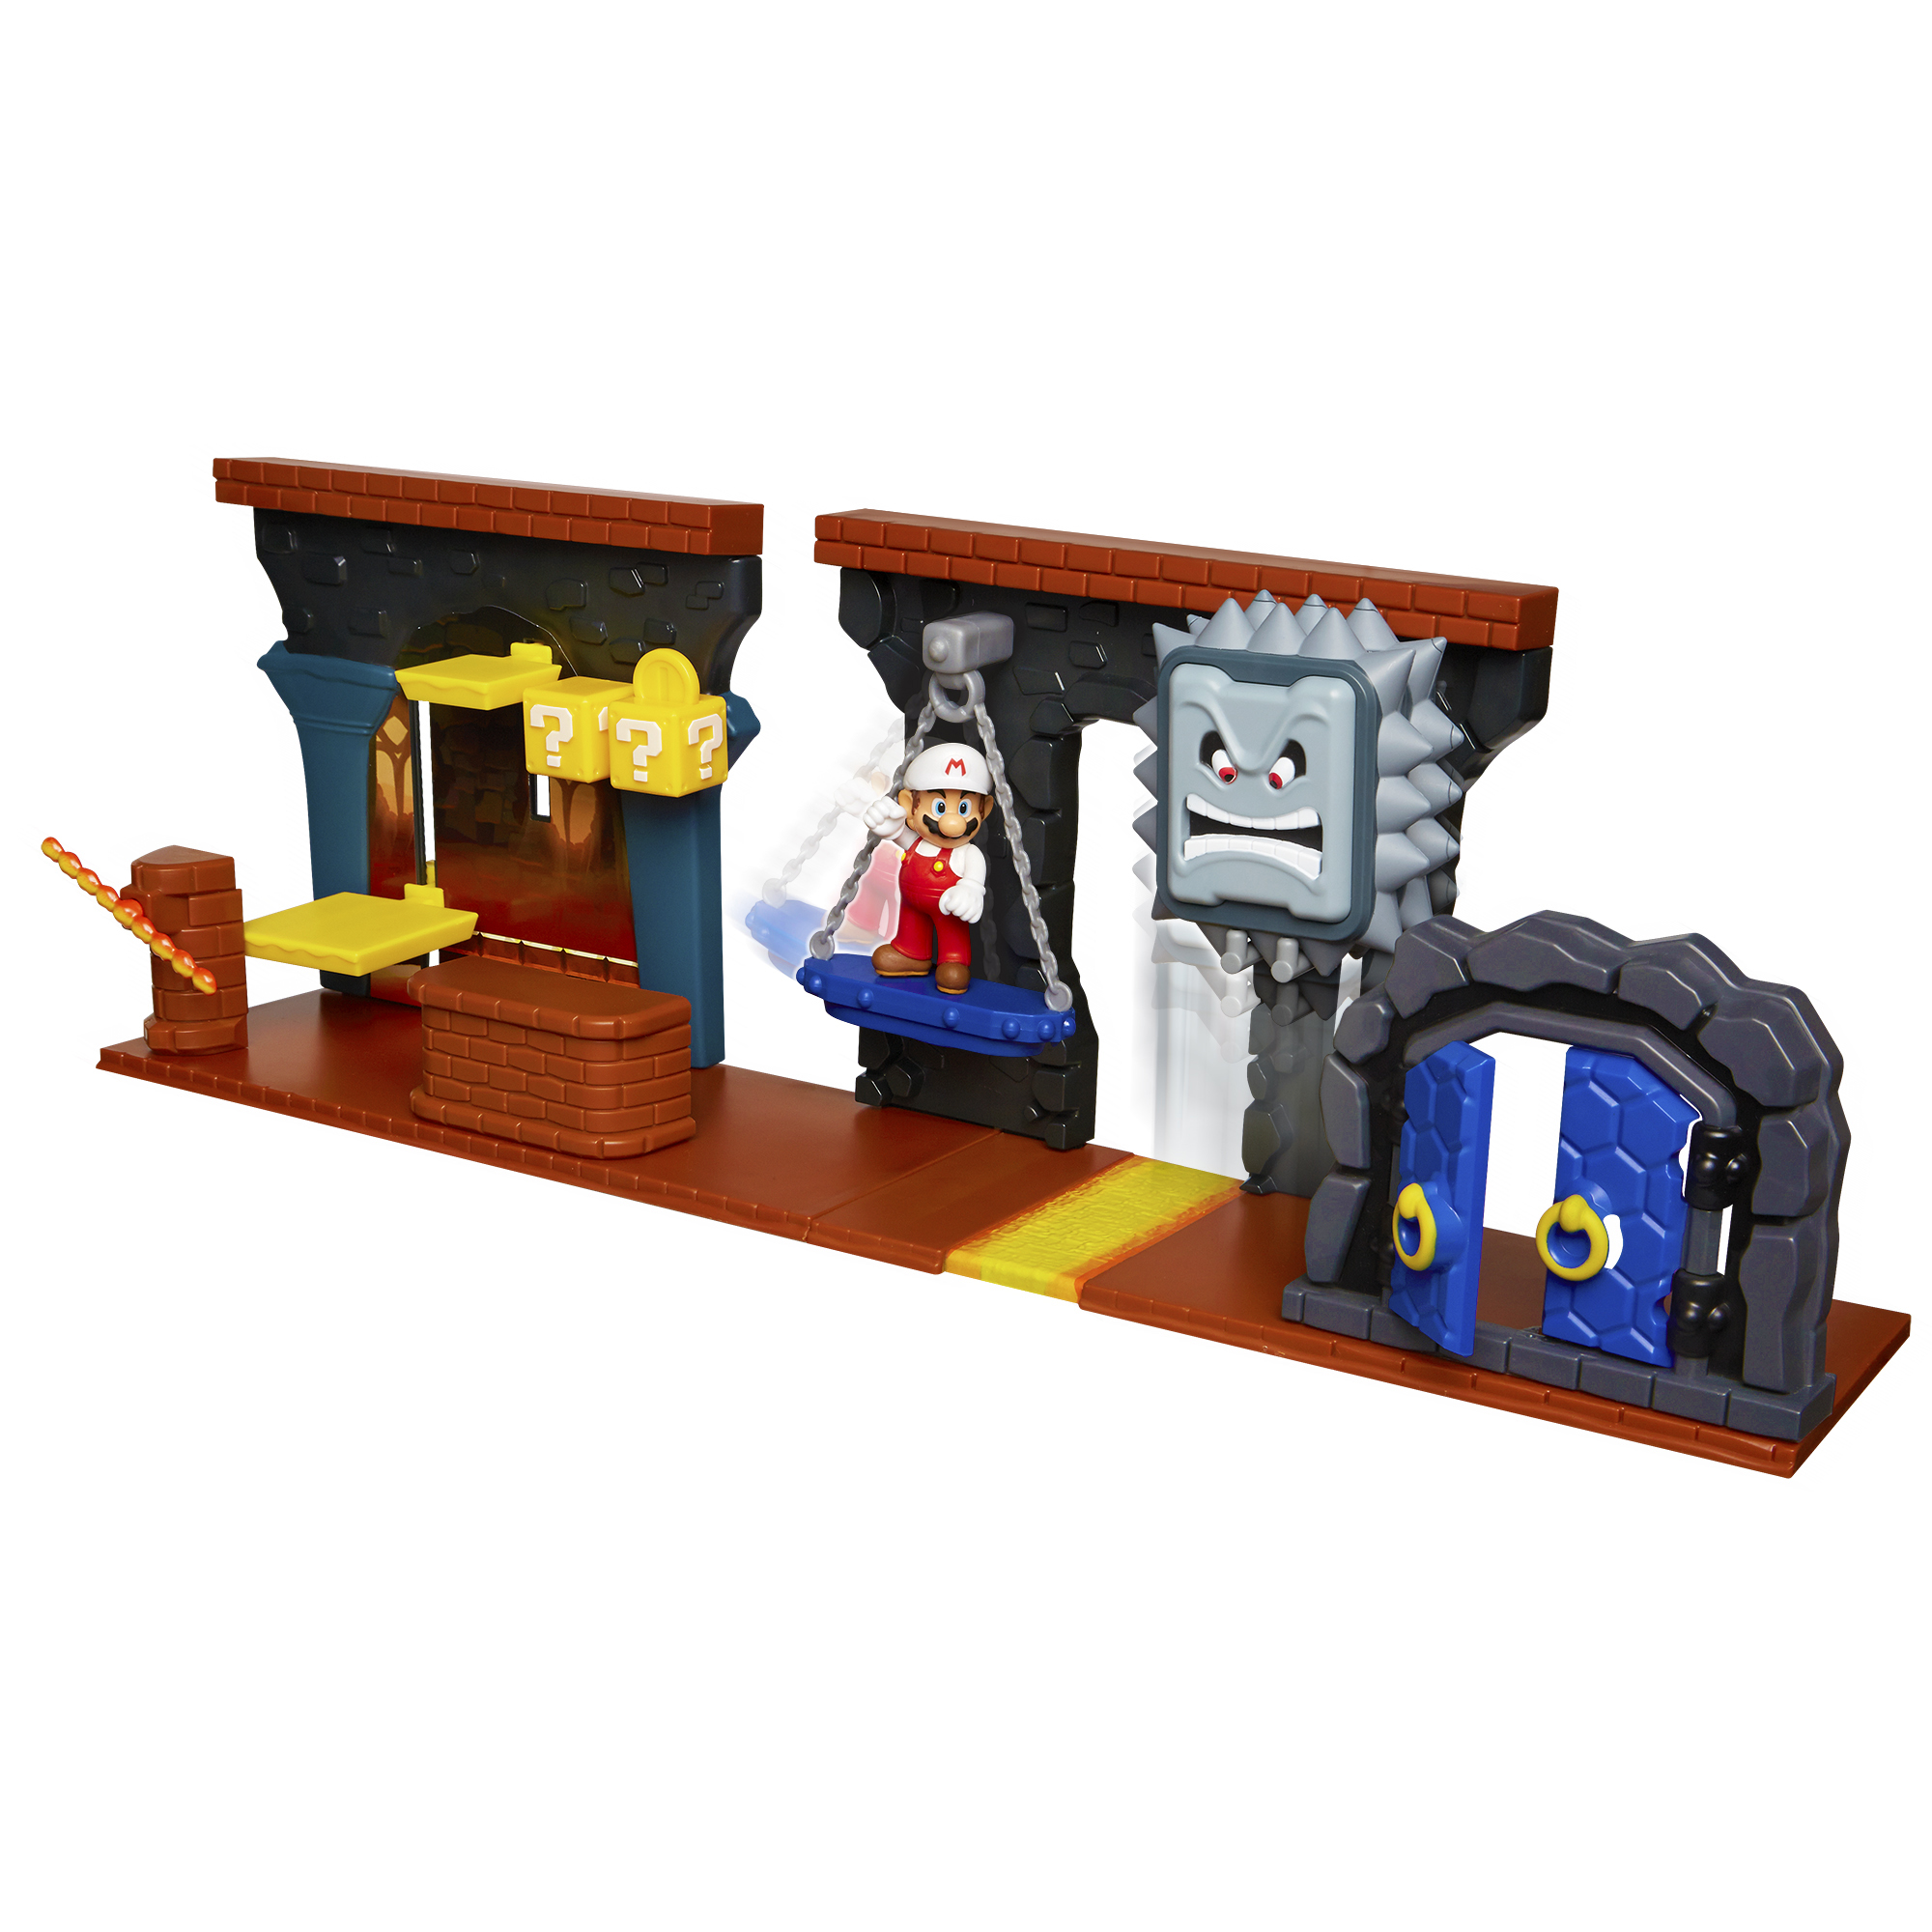 Super Mario 2.5 DLX Dungeon Playset